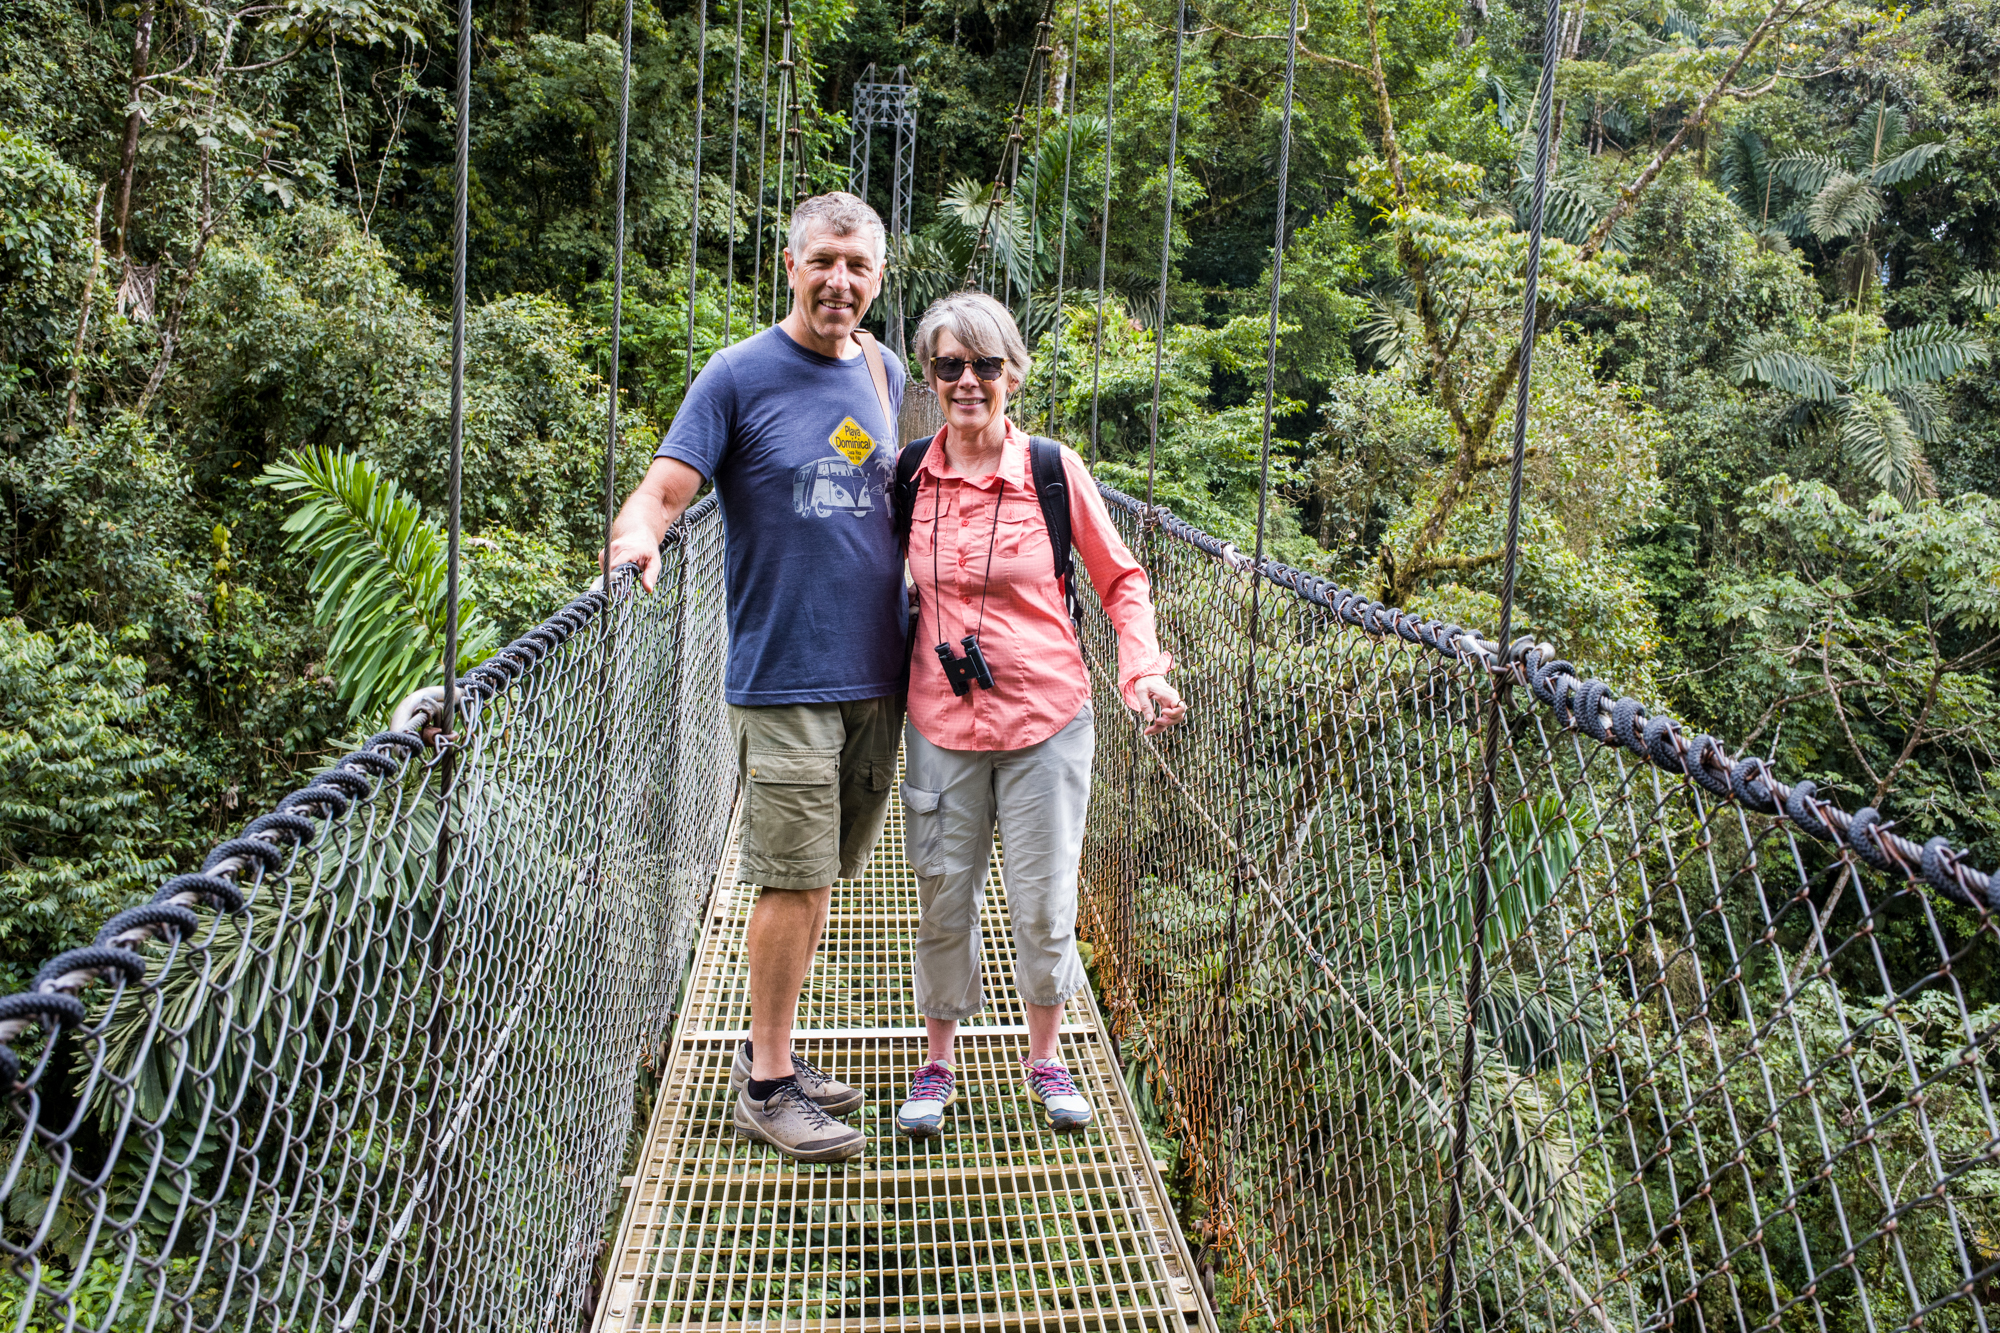 The Suspension Bridge in the canopy links the cloud forest